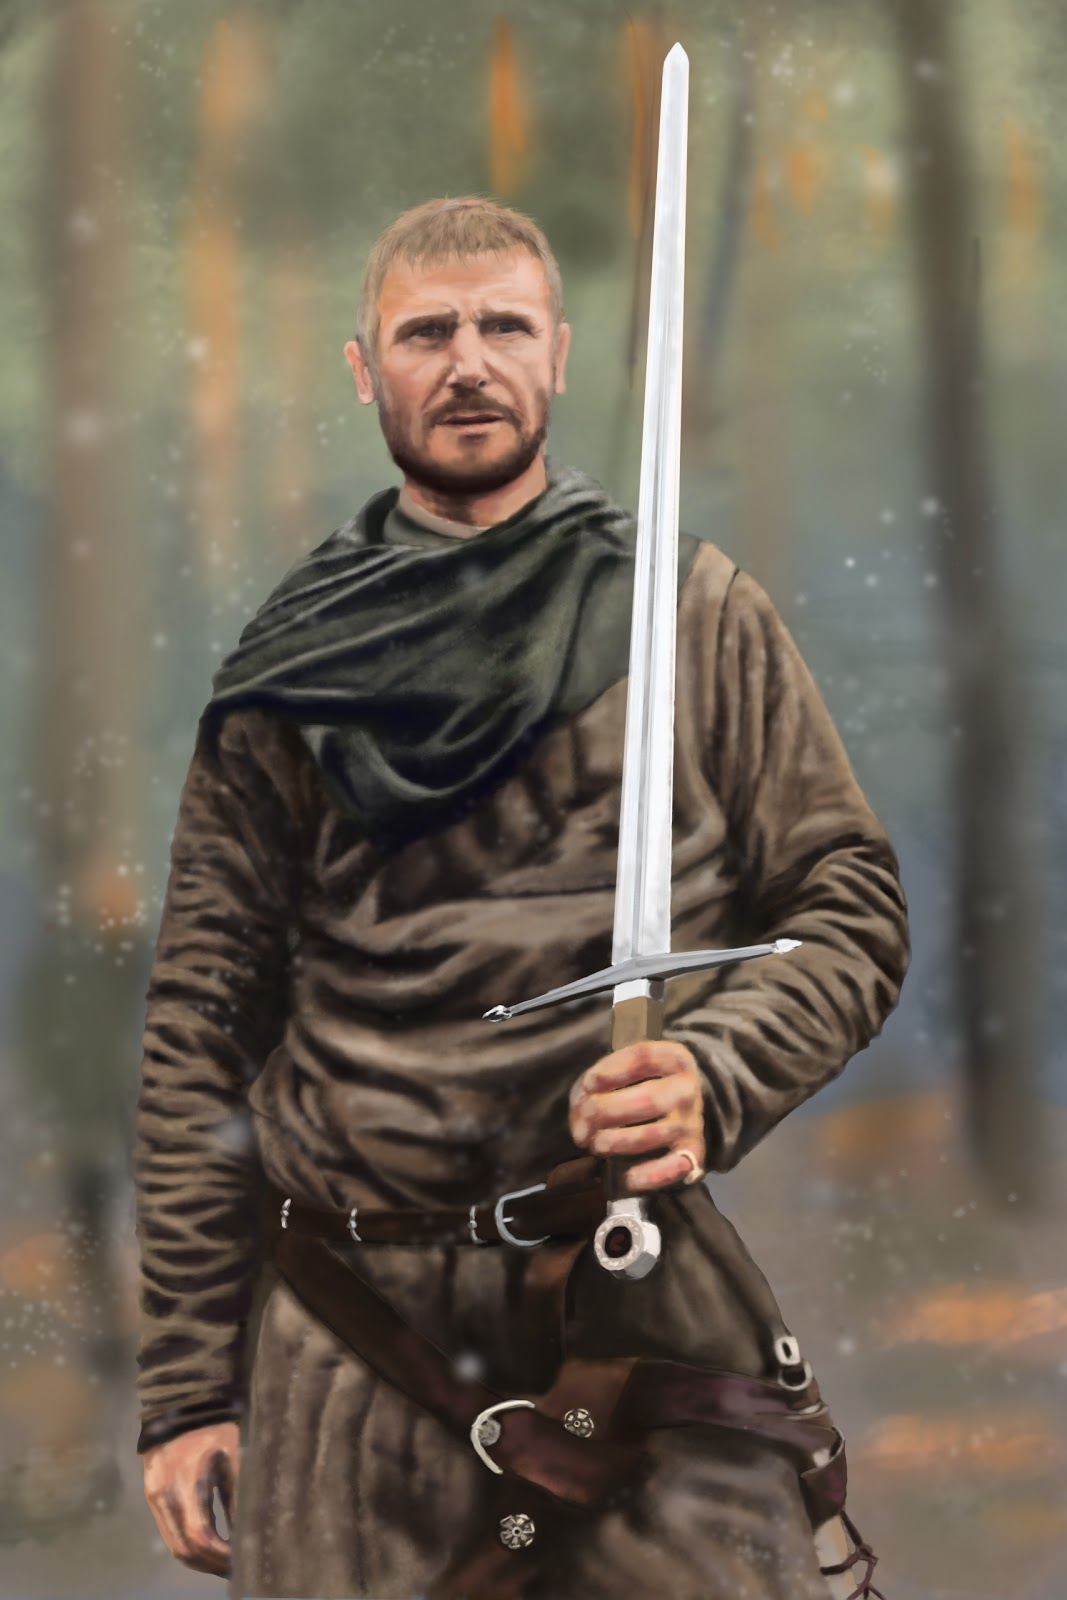 Kingdom of Heaven Liam Neeson Photoshop study